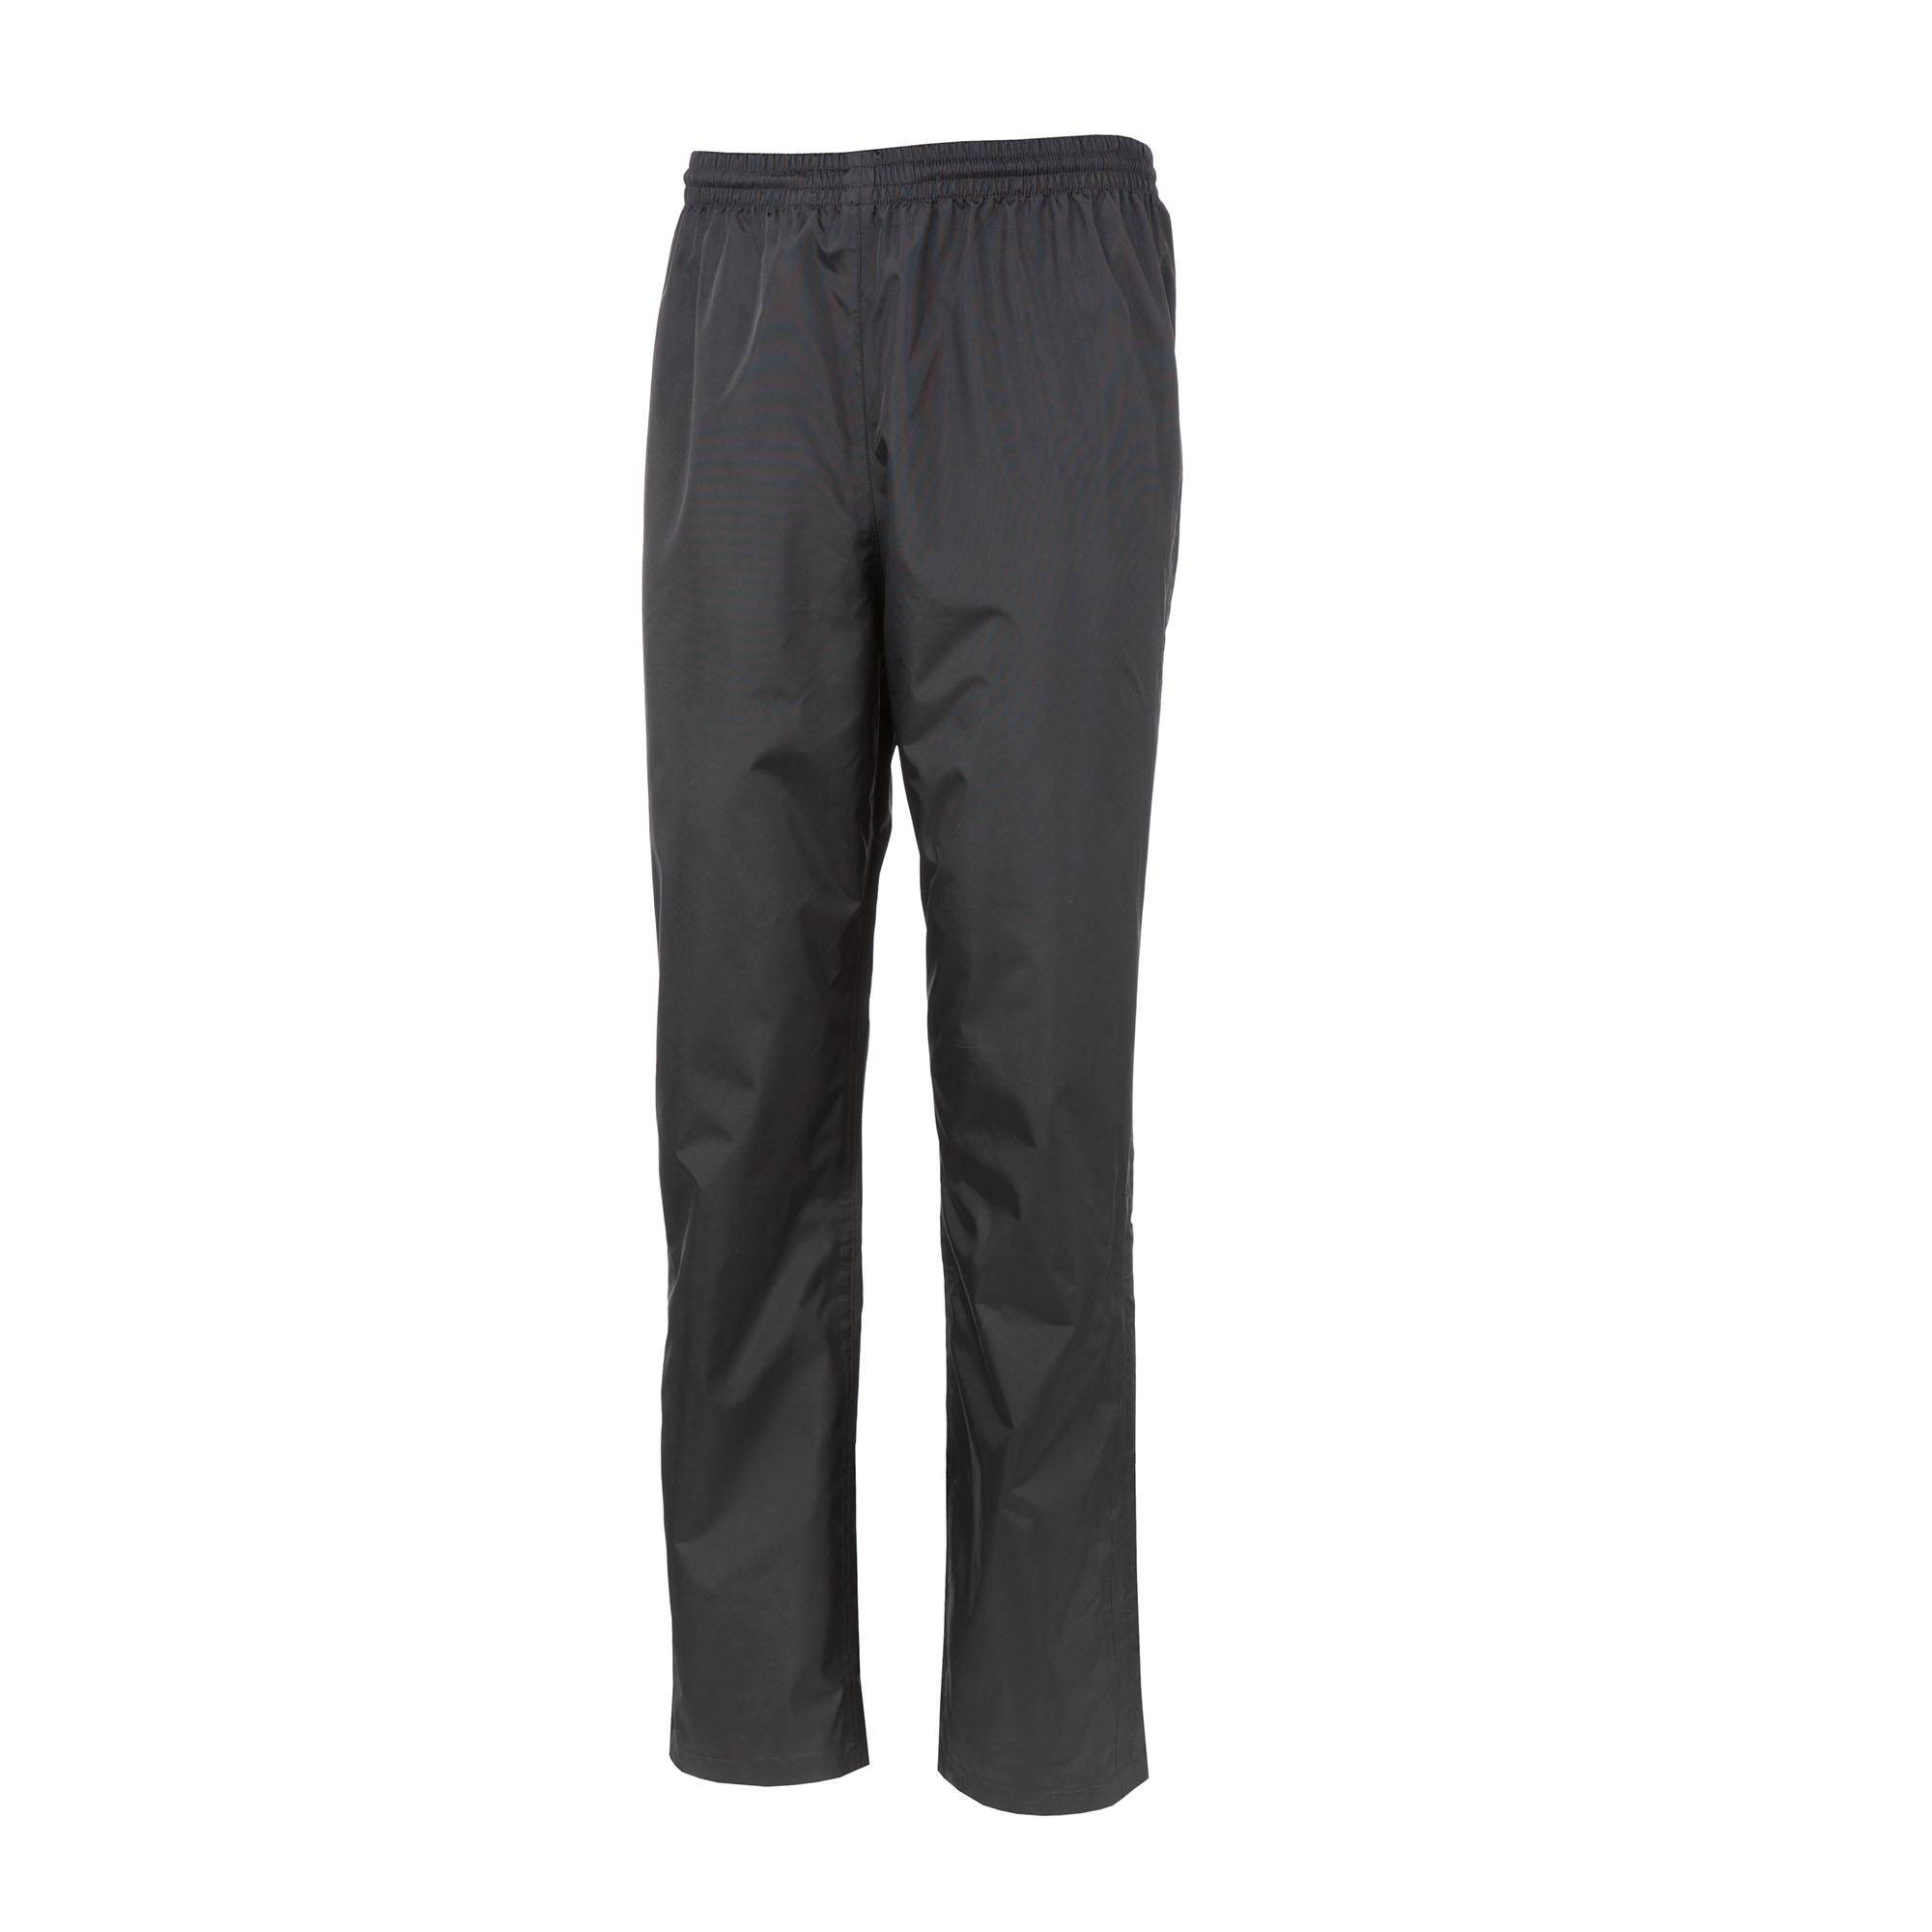 Pantaloni Panta Diluvio Light Plus Nero